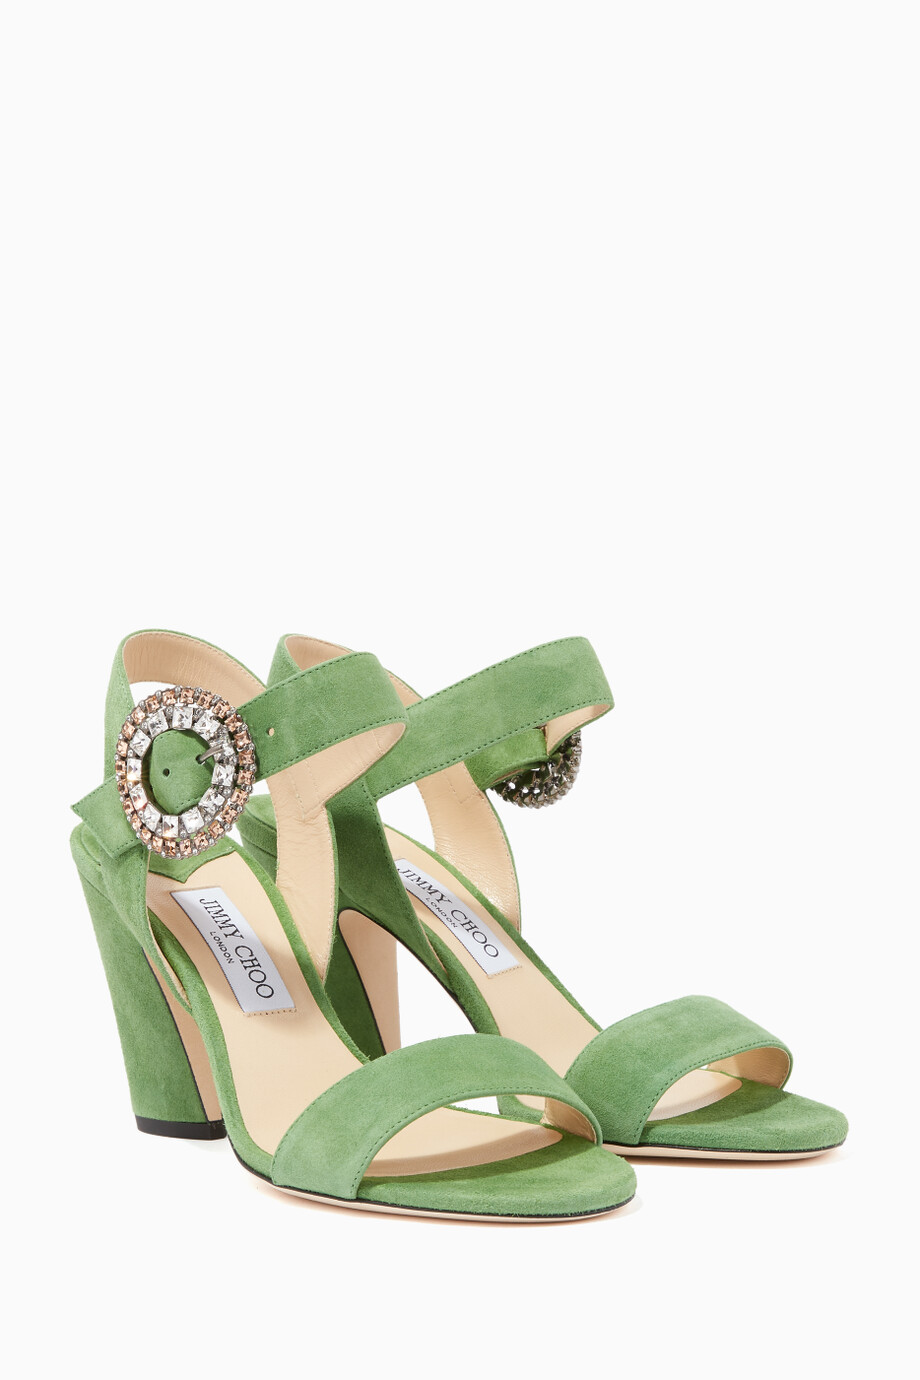 add71fc4e93c Shop Jimmy Choo Green Lime-Green   Silver-Crystal Mischa 85 Sandals ...